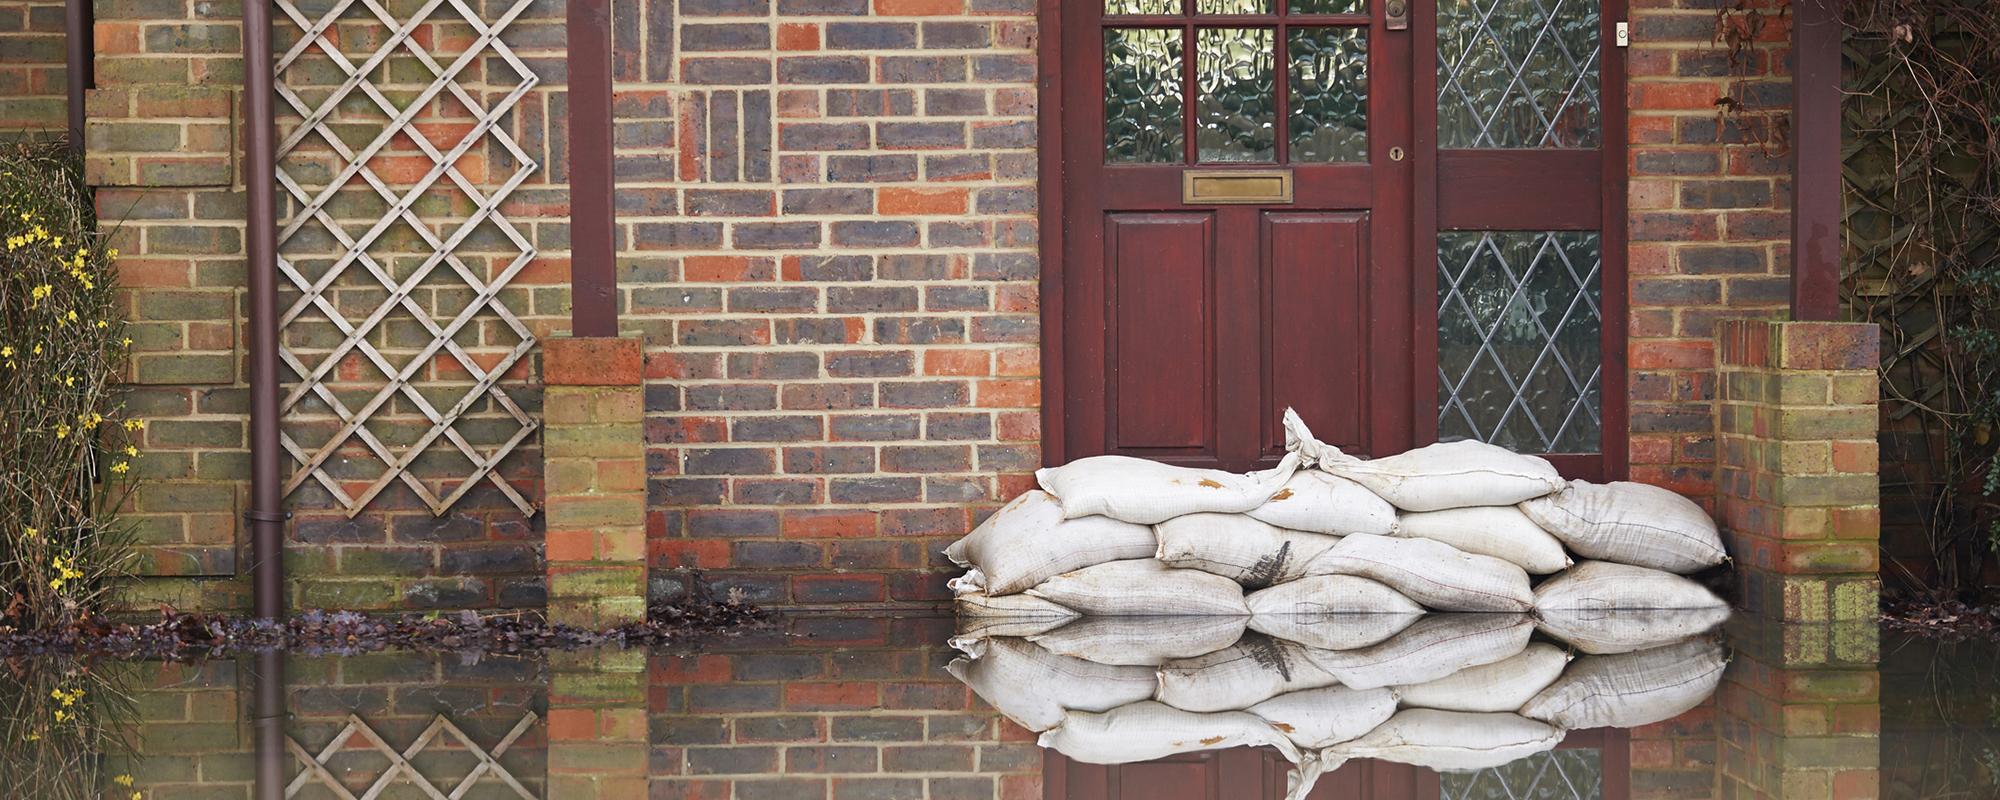 The increased risk of flooding is making insurers nervous (photo: Getty)